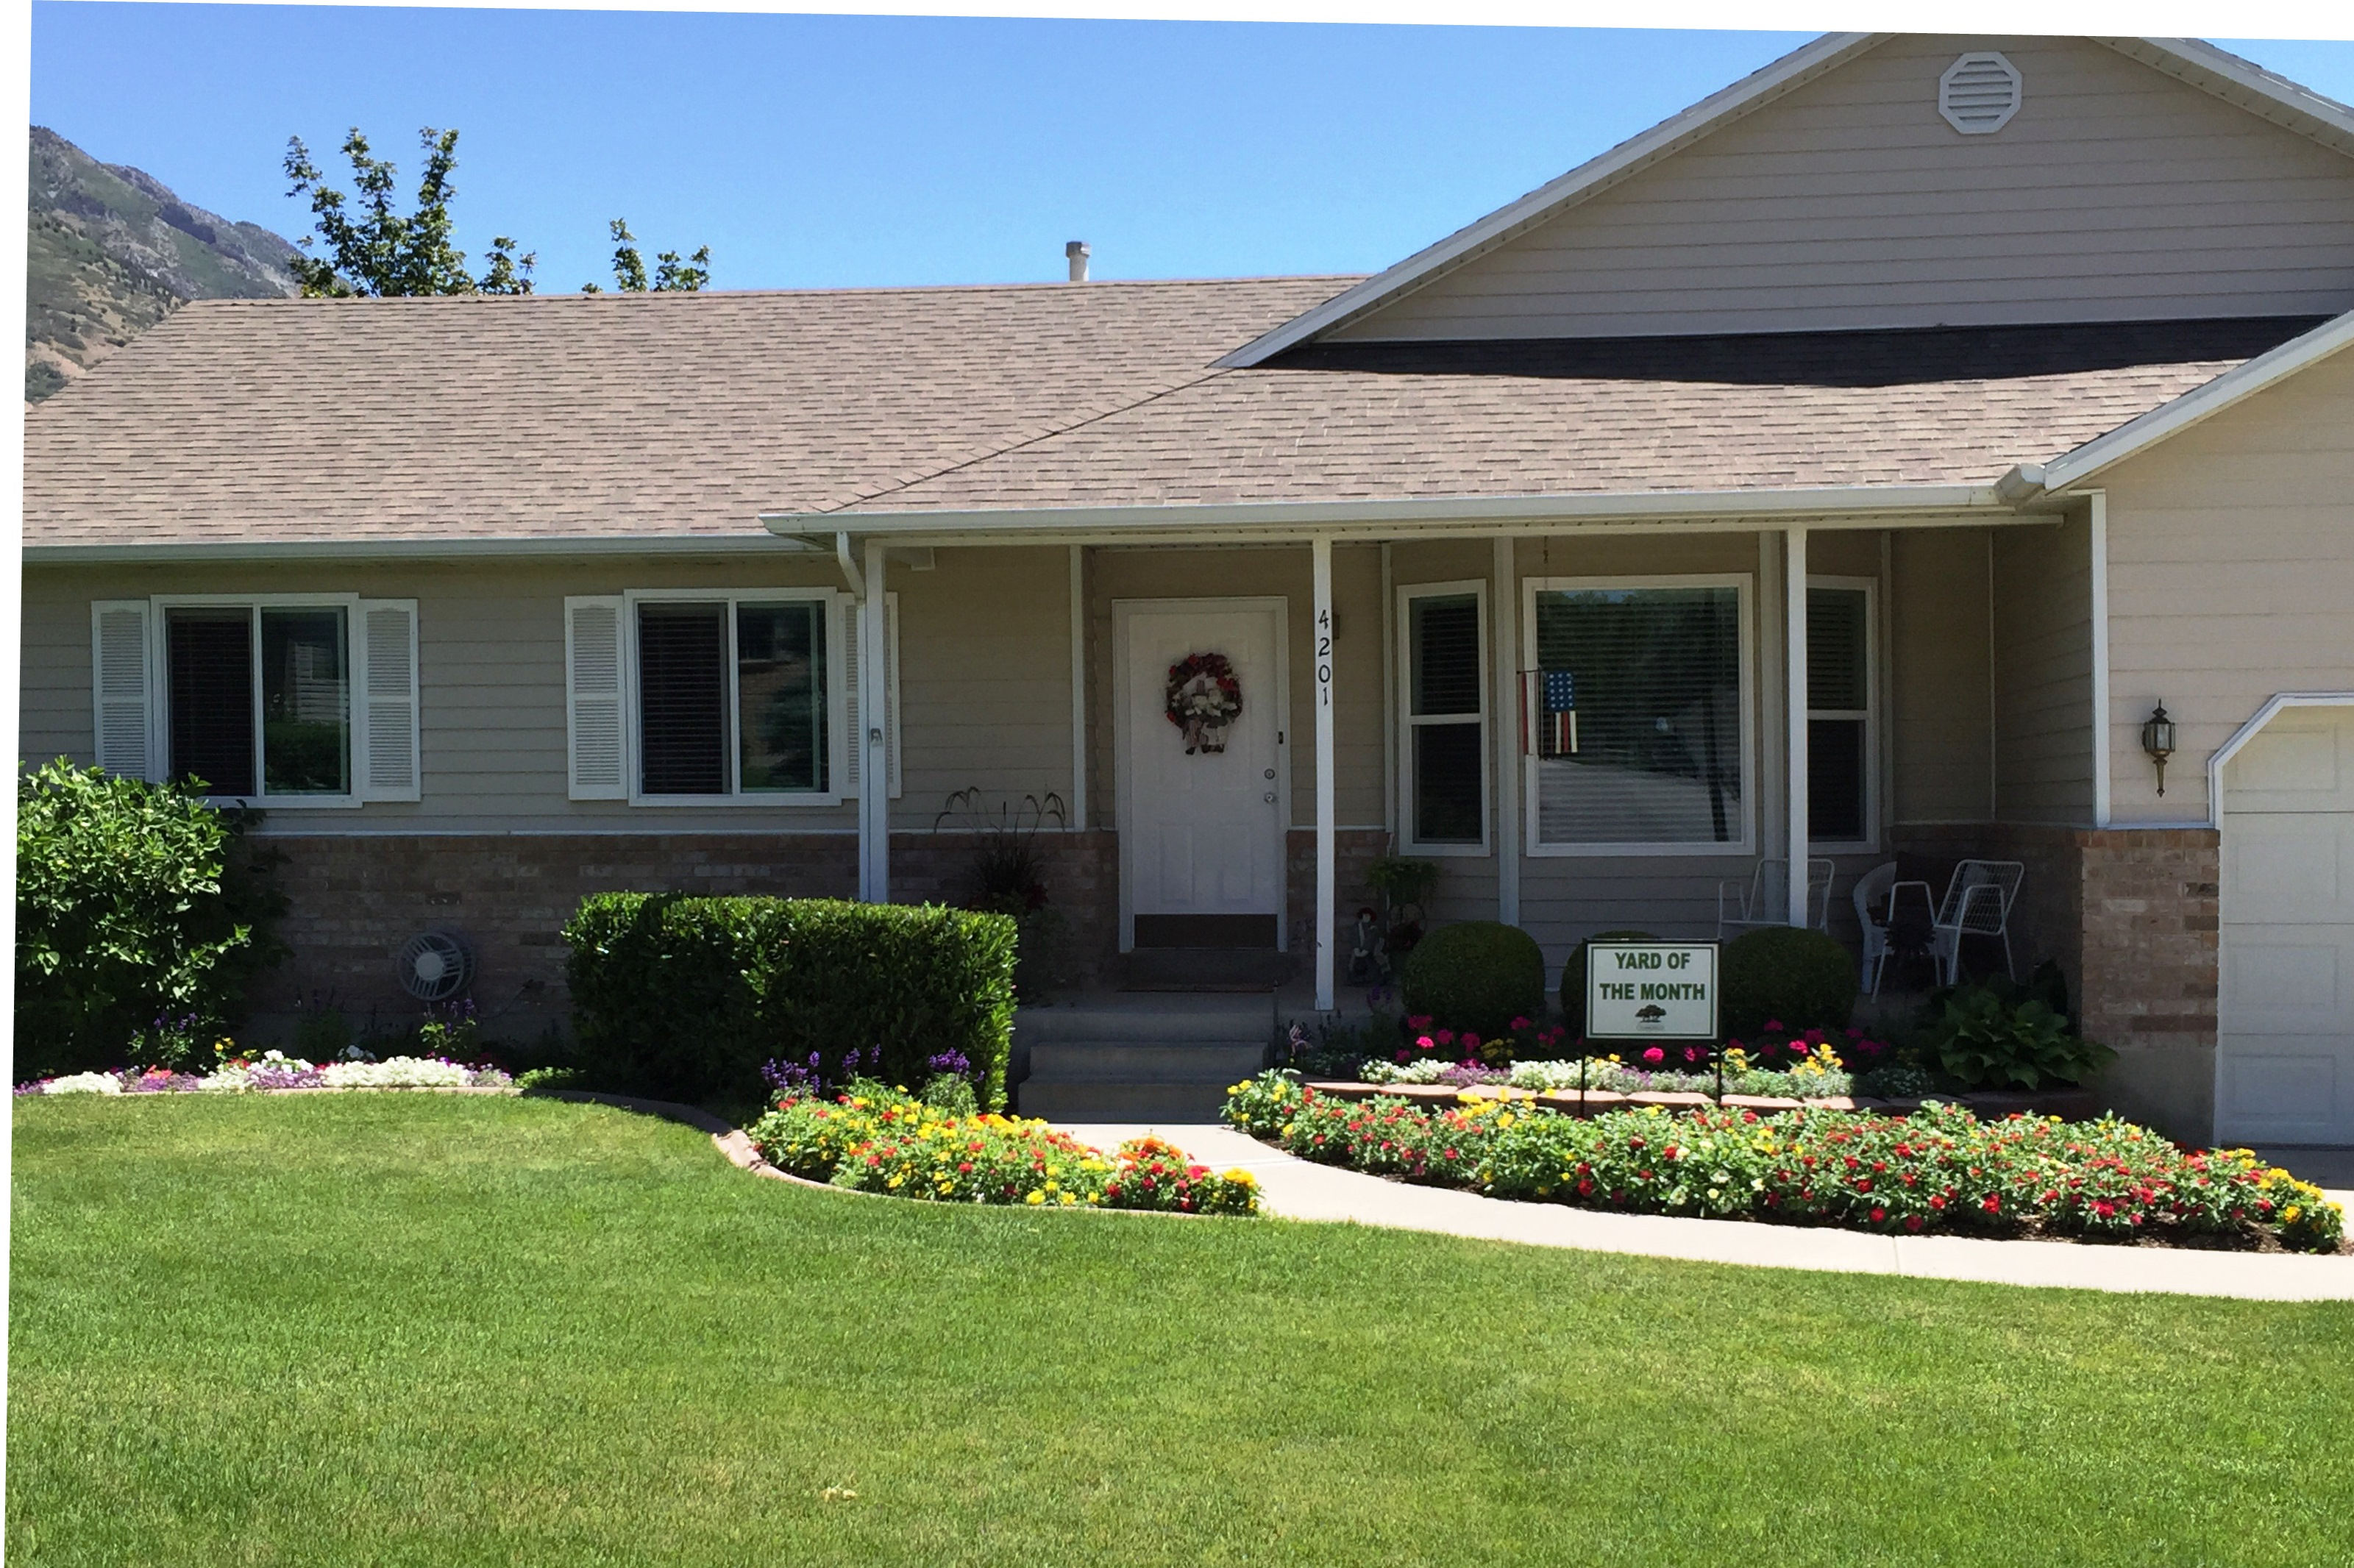 The Nielson Residence - 4201 W Sage Road